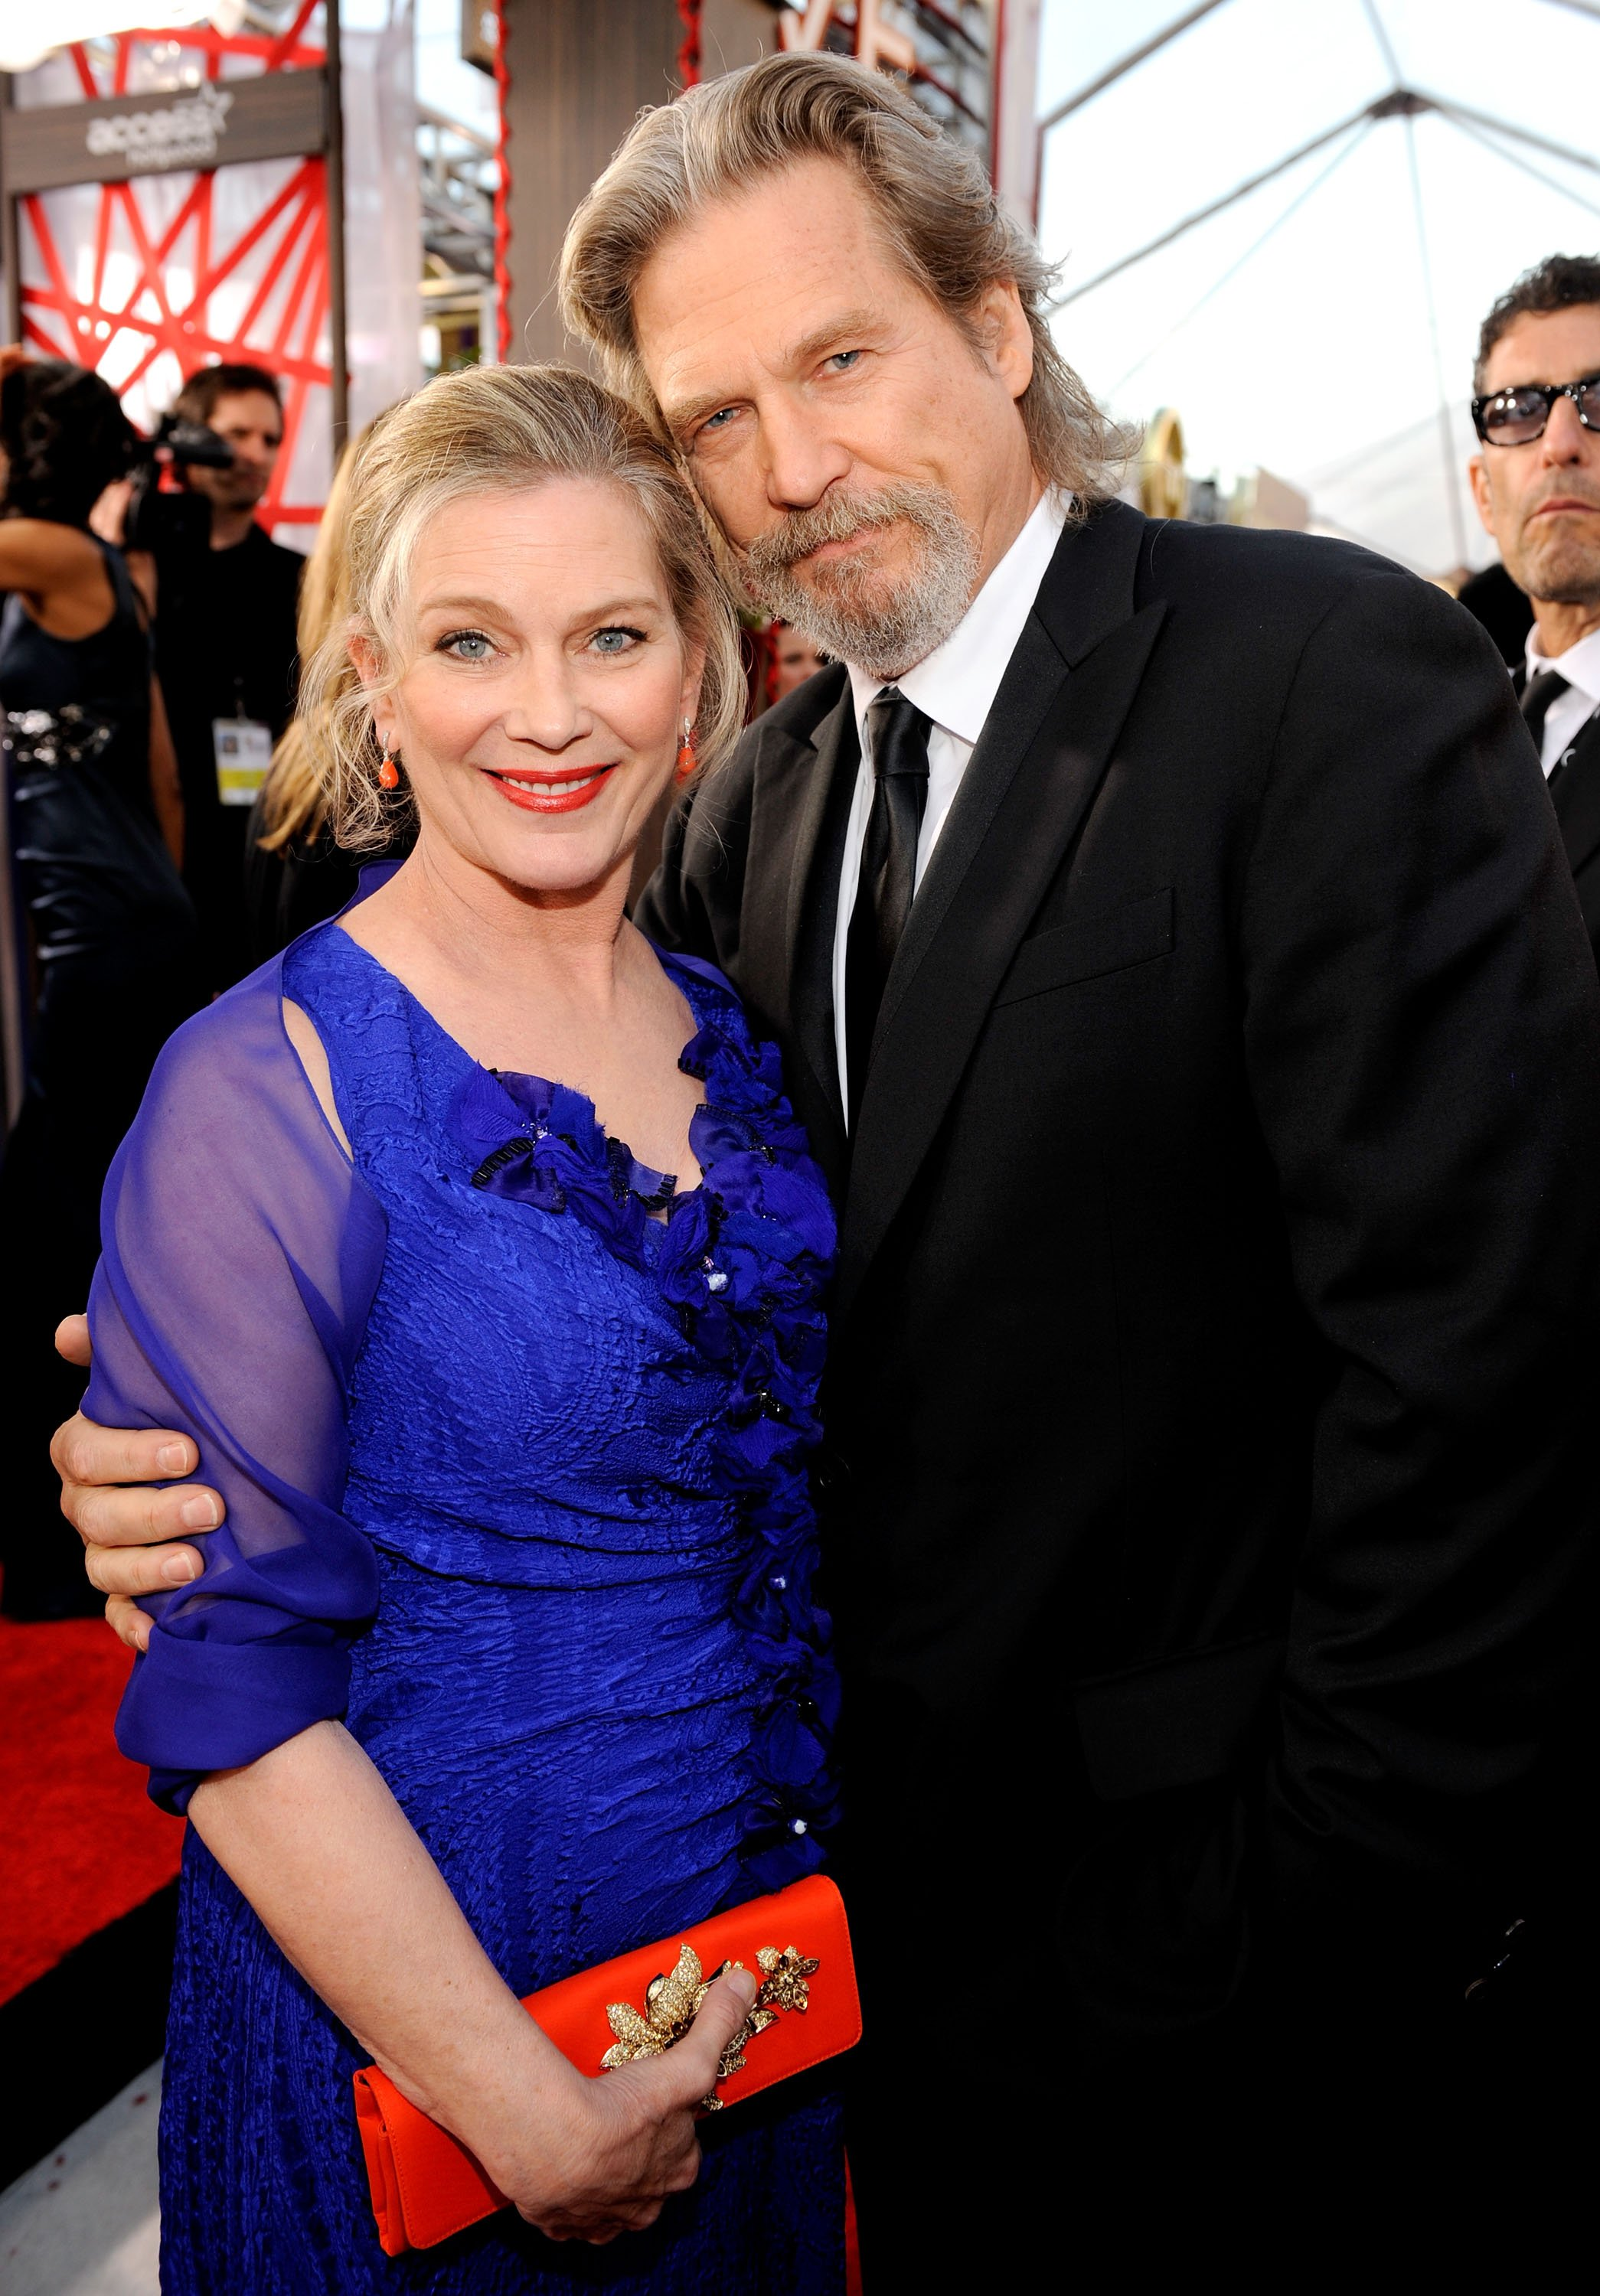 Susan Geston and Jeff Bridges on January 23, 2010 in Los Angeles, California | Source: Getty Images